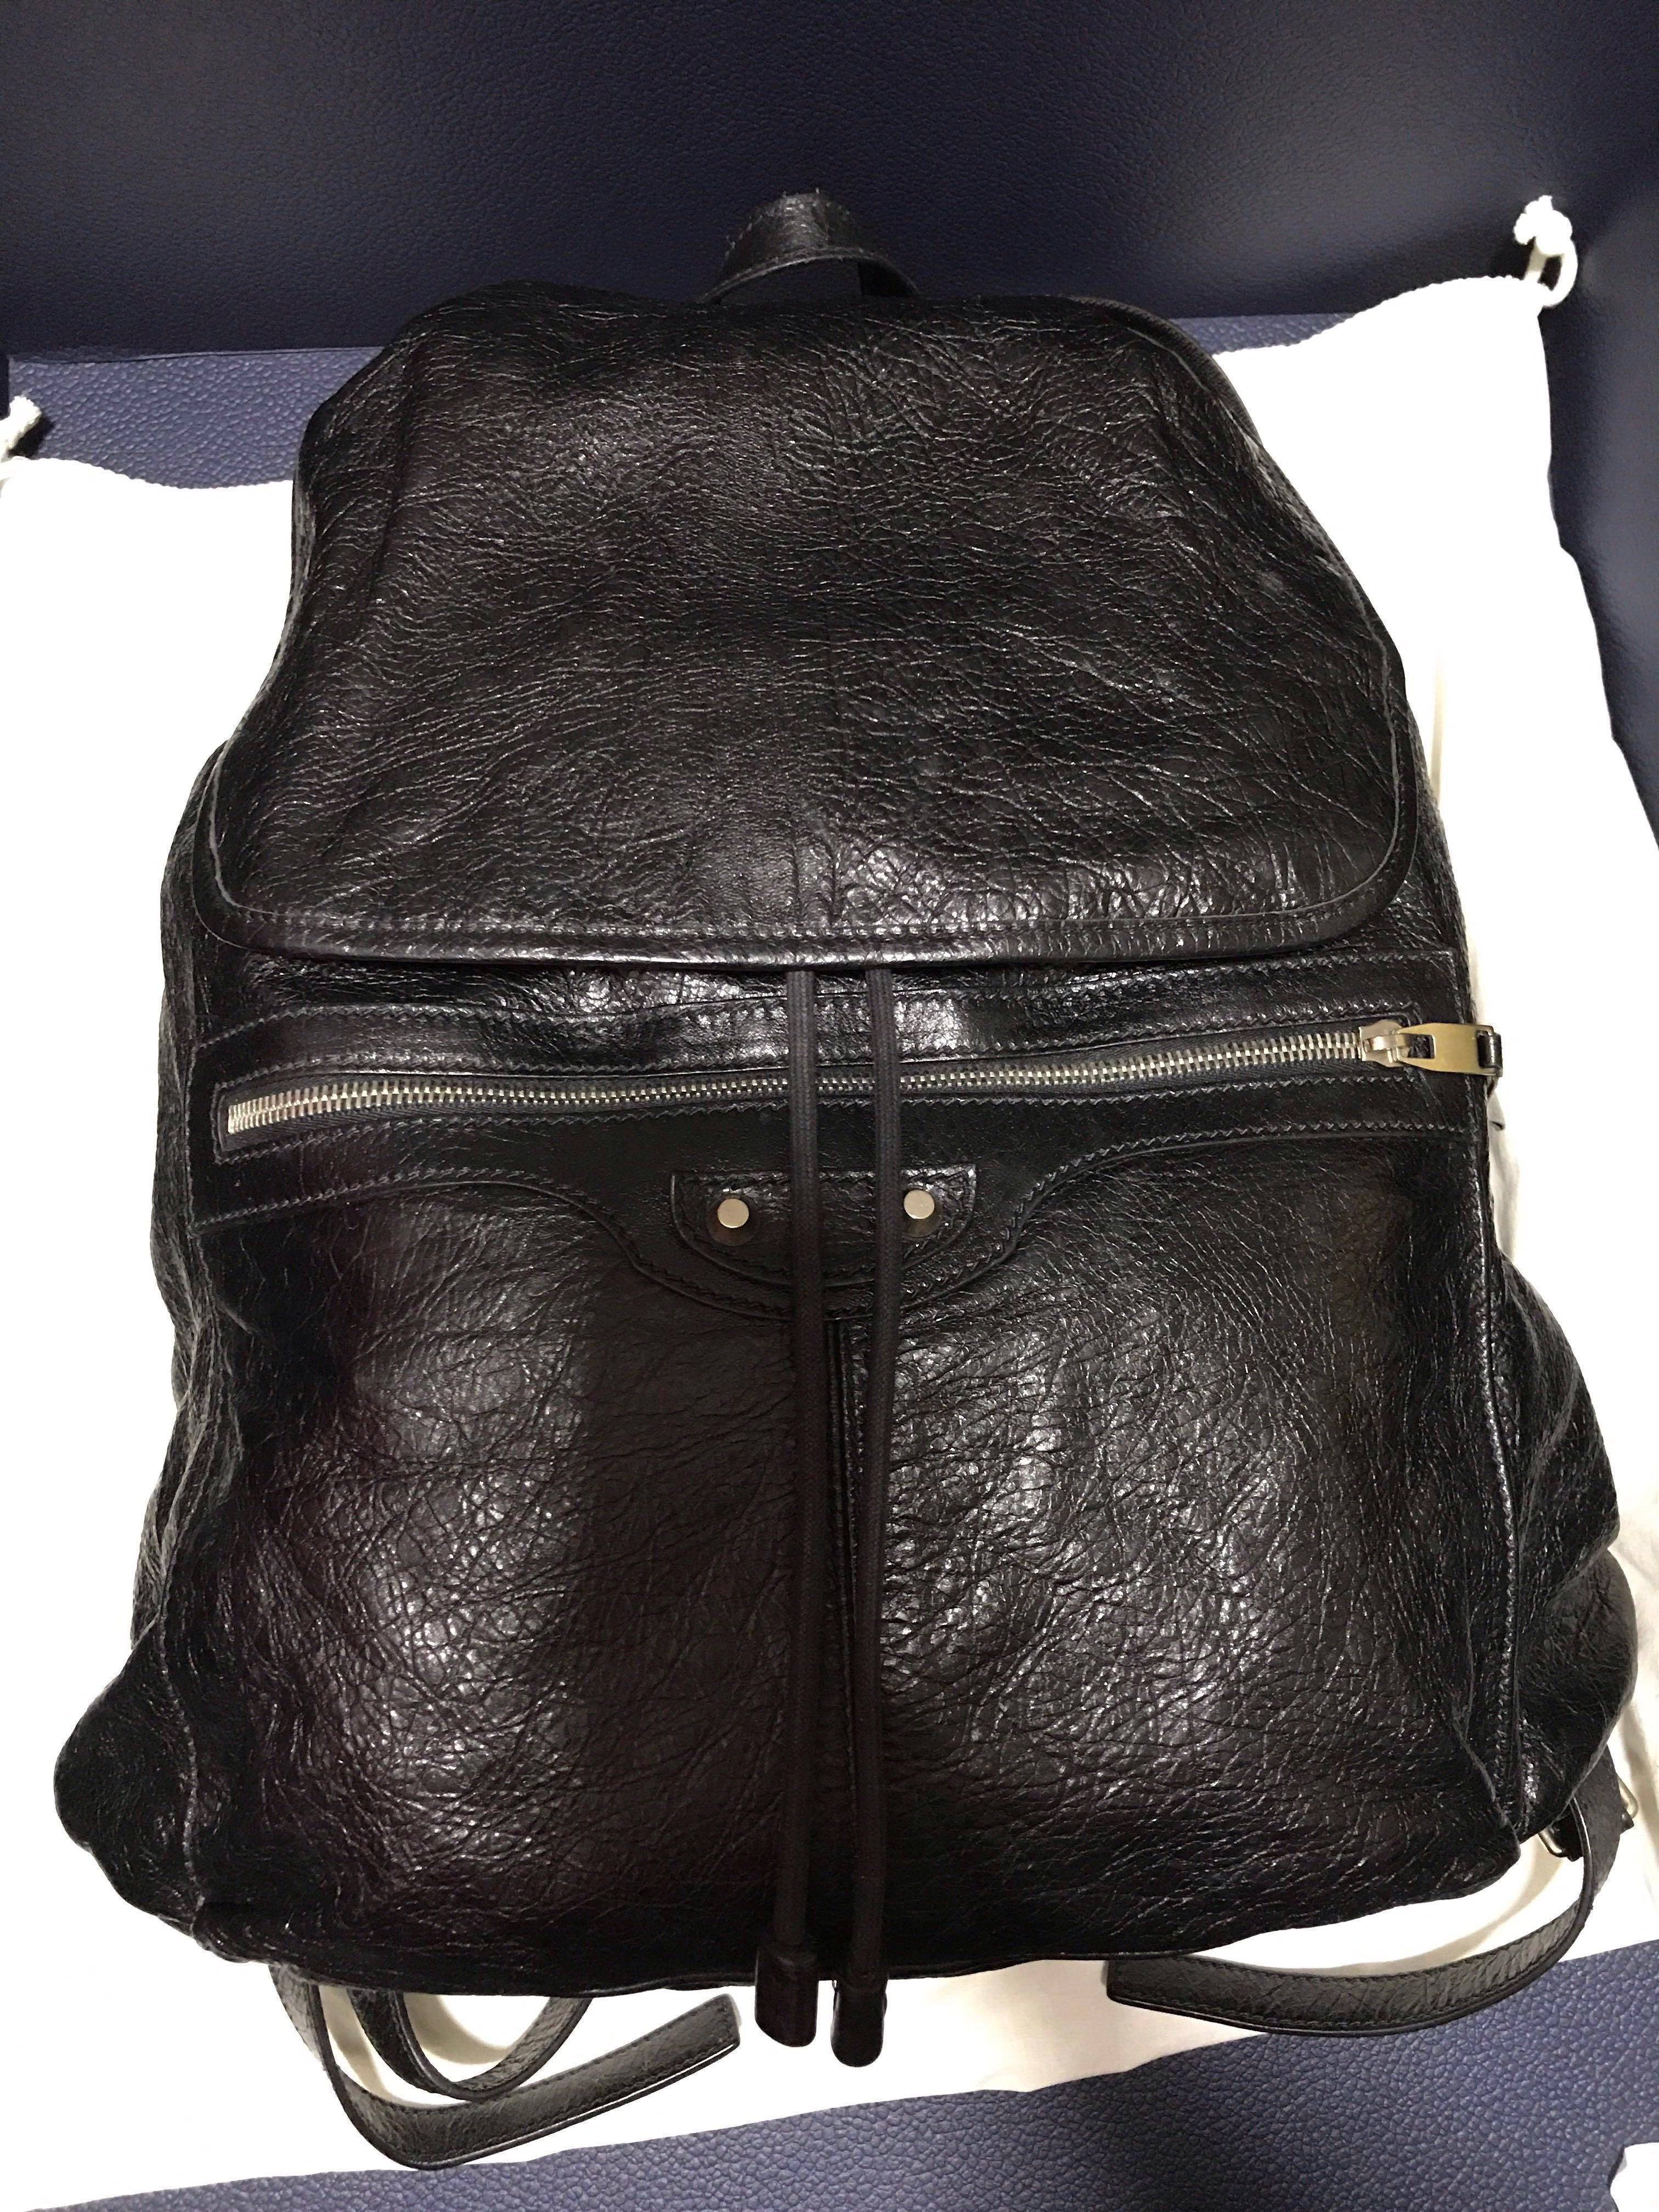 bf1665ce66c BALENCIAGA Arena Leather Backpack Bag, Men's Fashion, Bags & Wallets ...